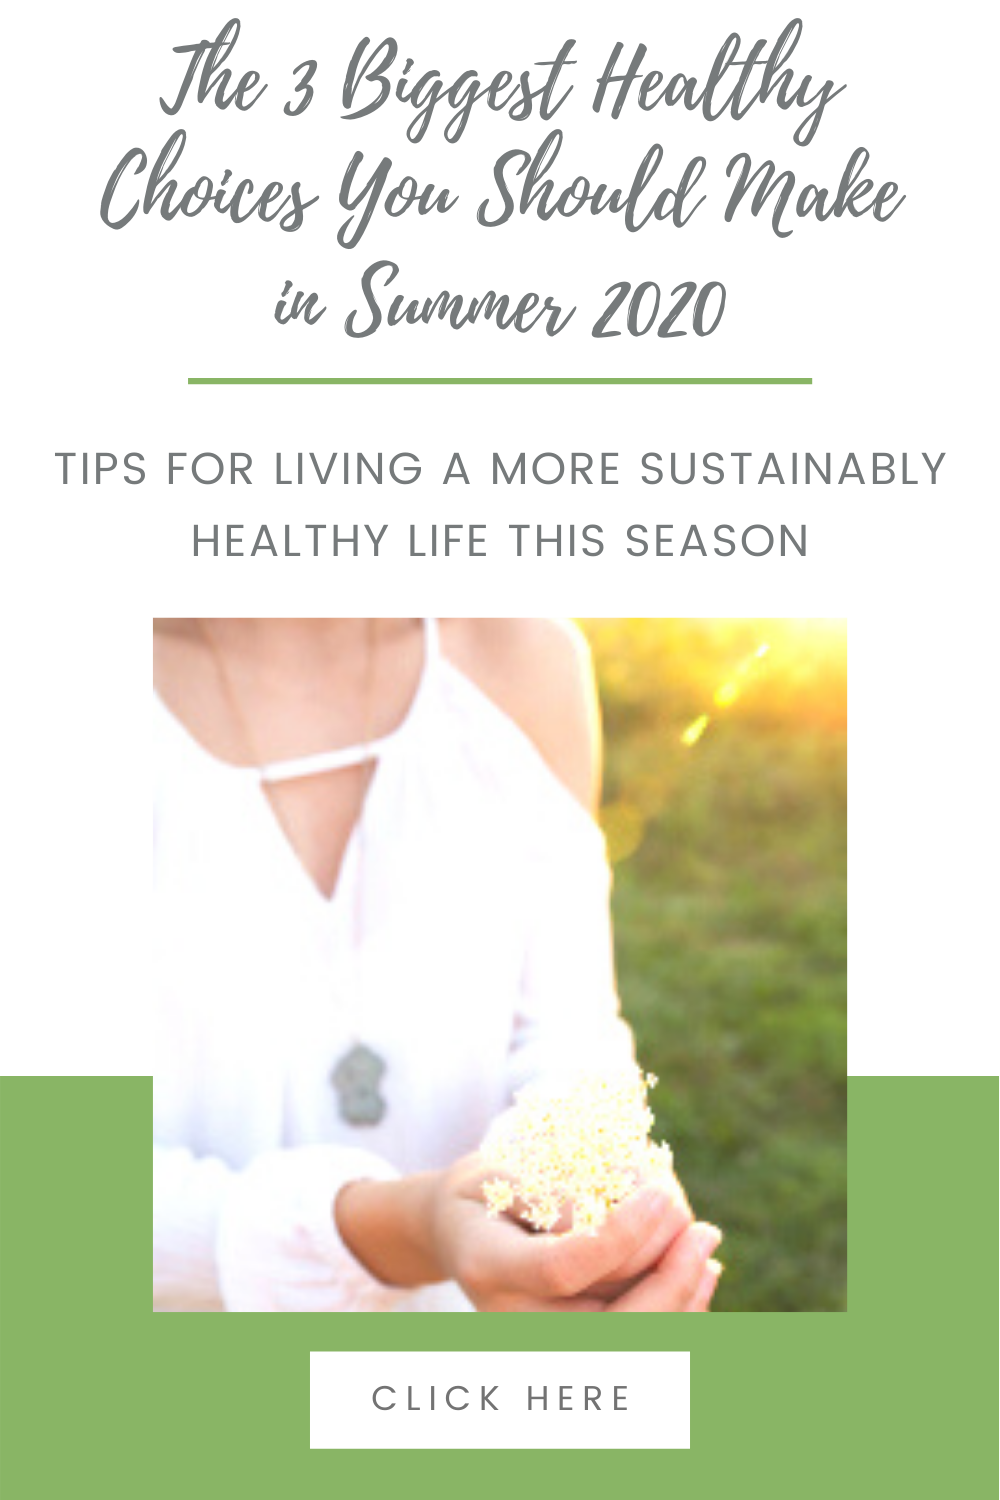 The 3 Biggest Healthy Choices You Should Make in Summer 2020